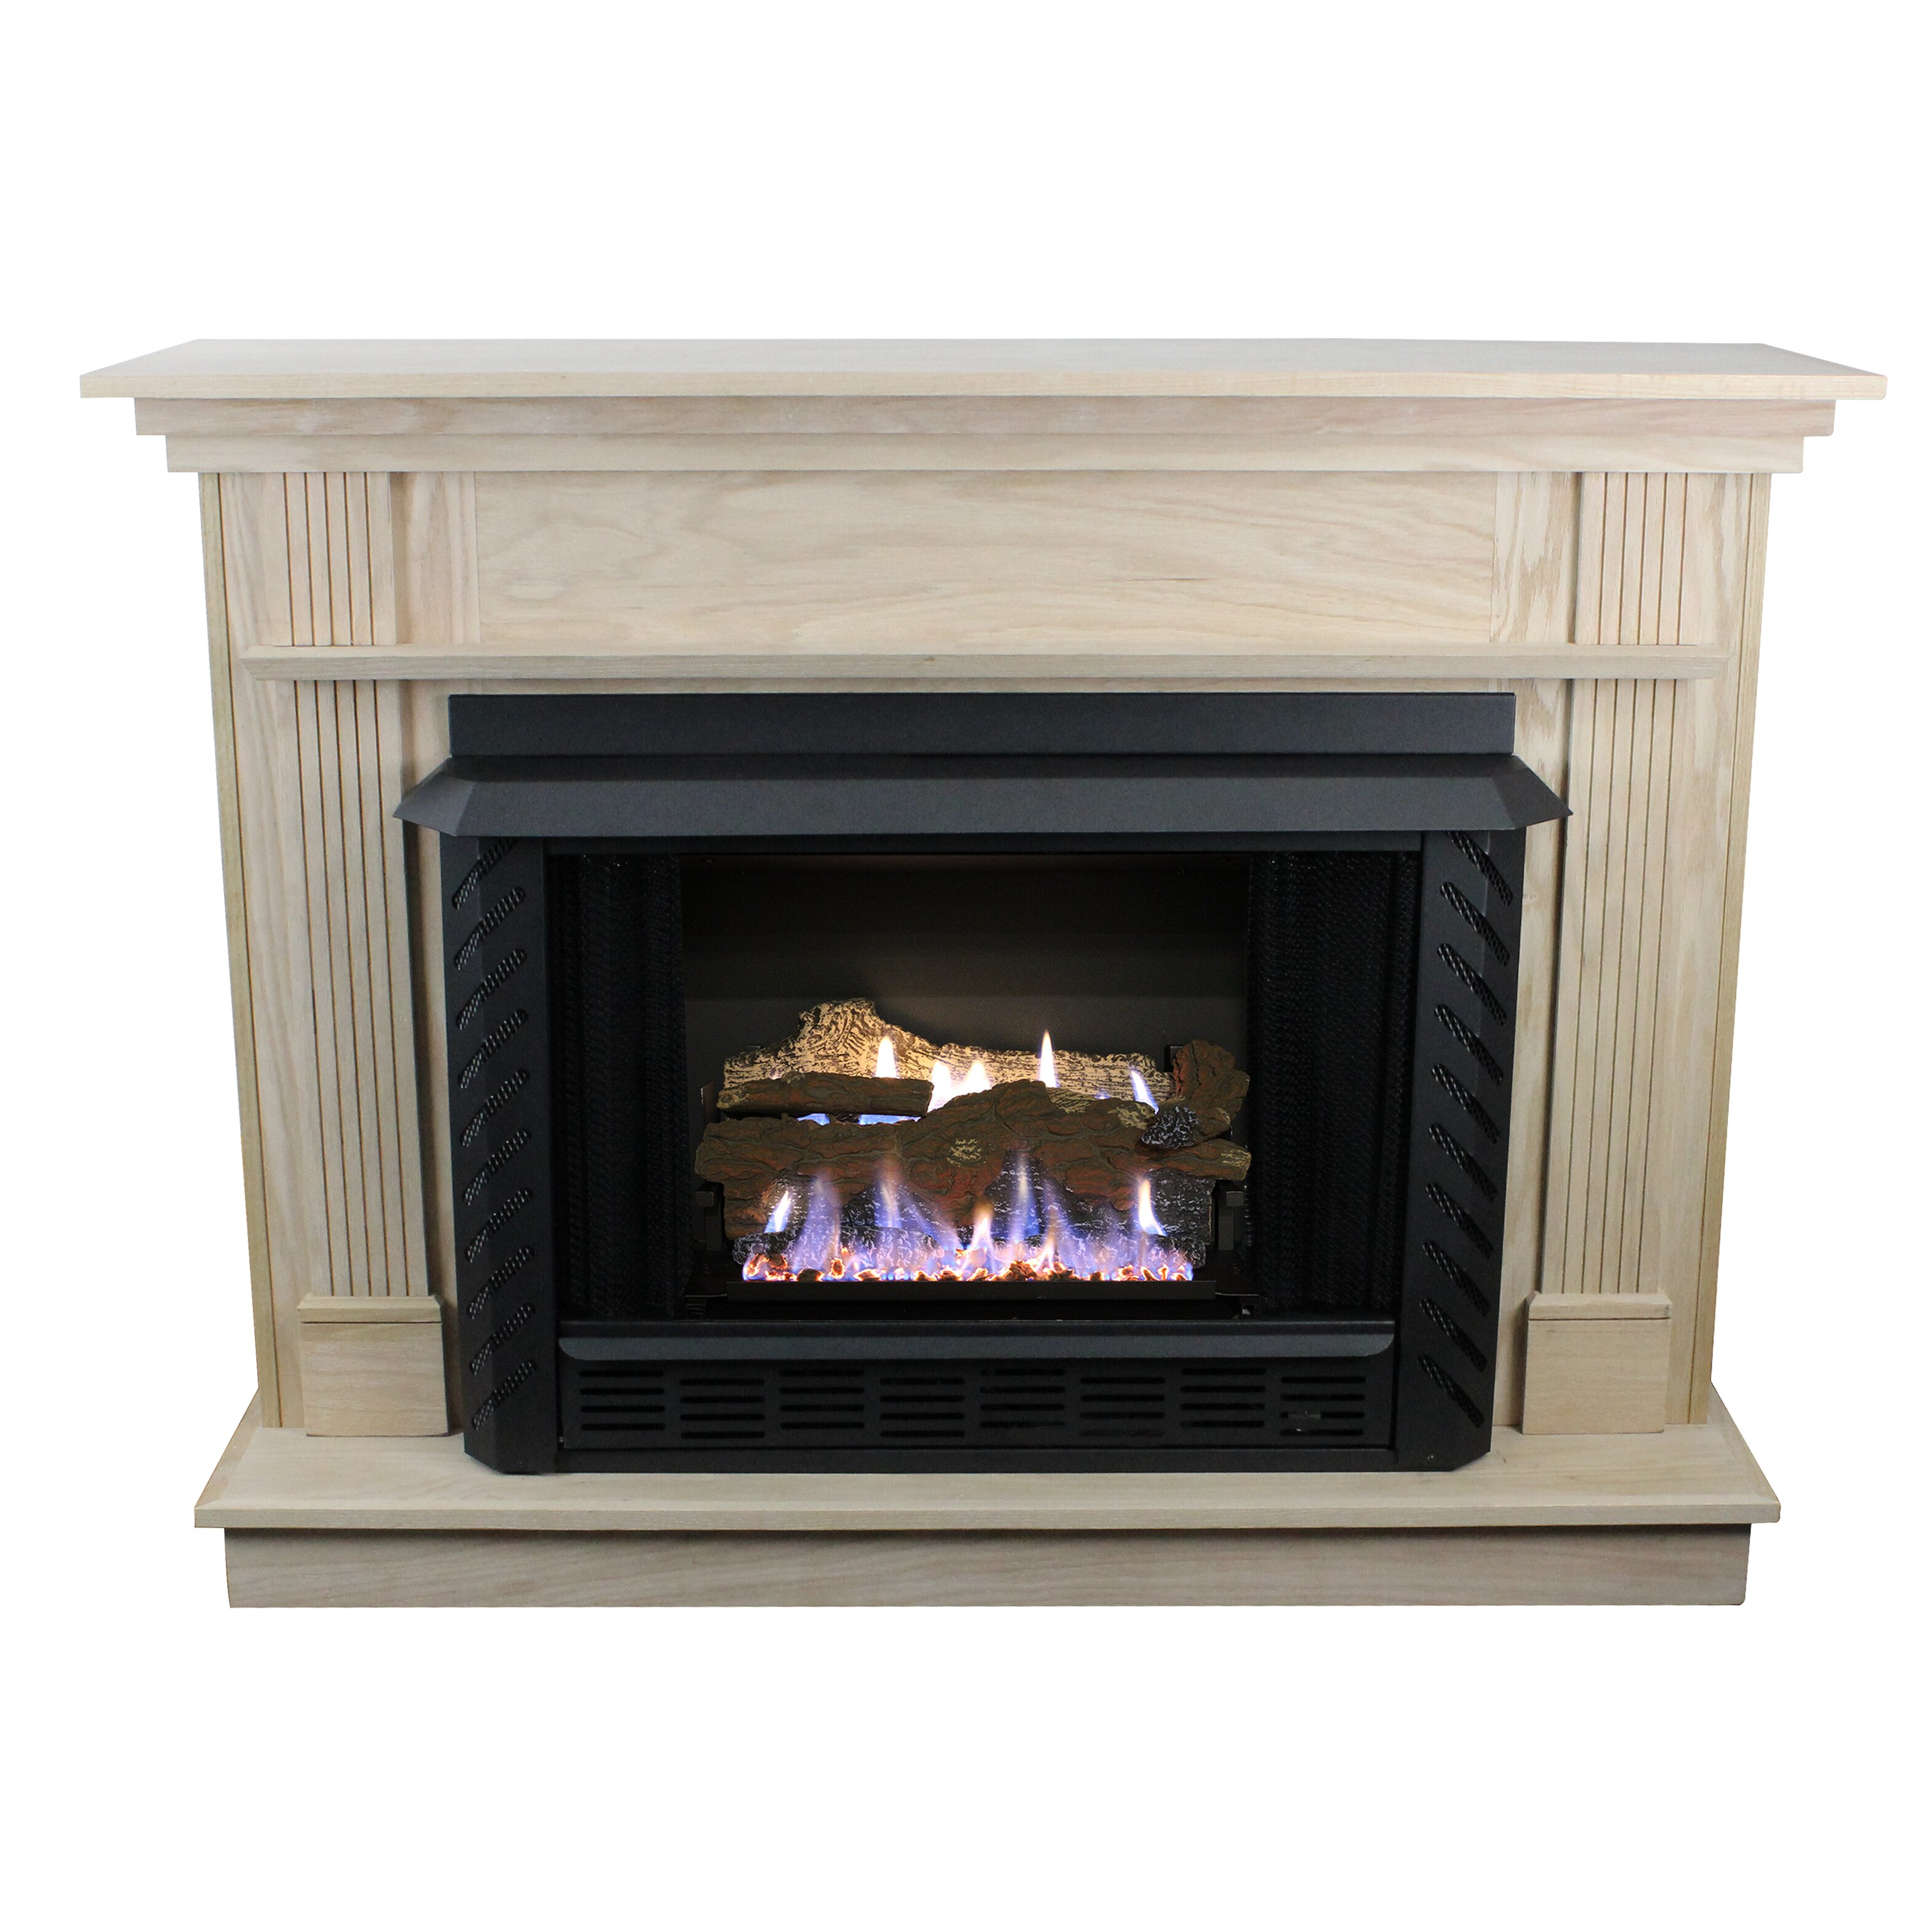 Wayfair Furniture Fireplace